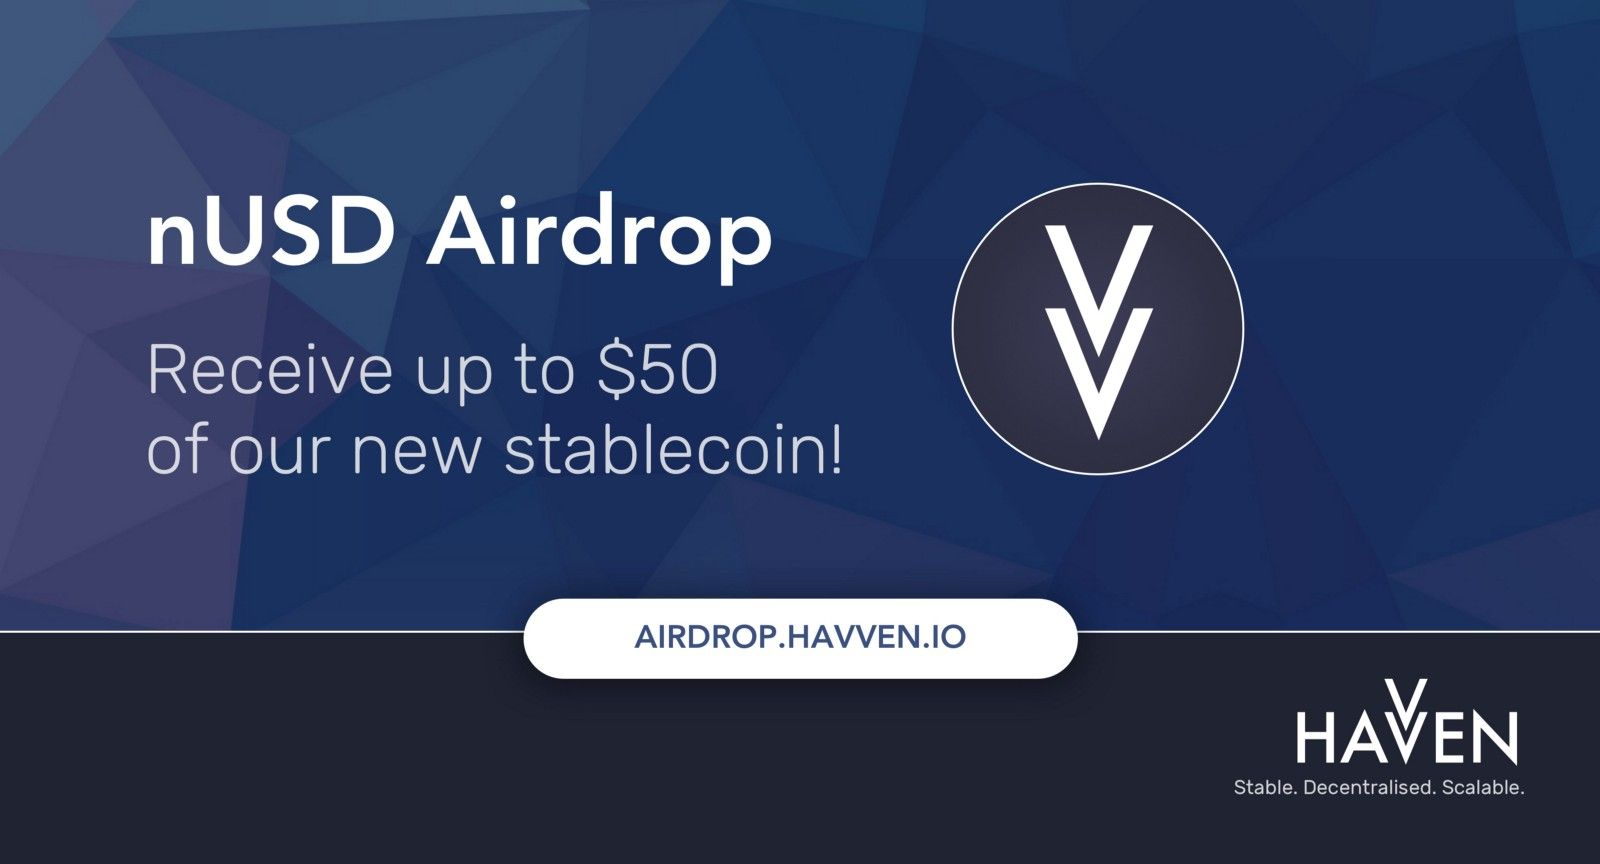 Announcing the nUSD Airdrop Campaign